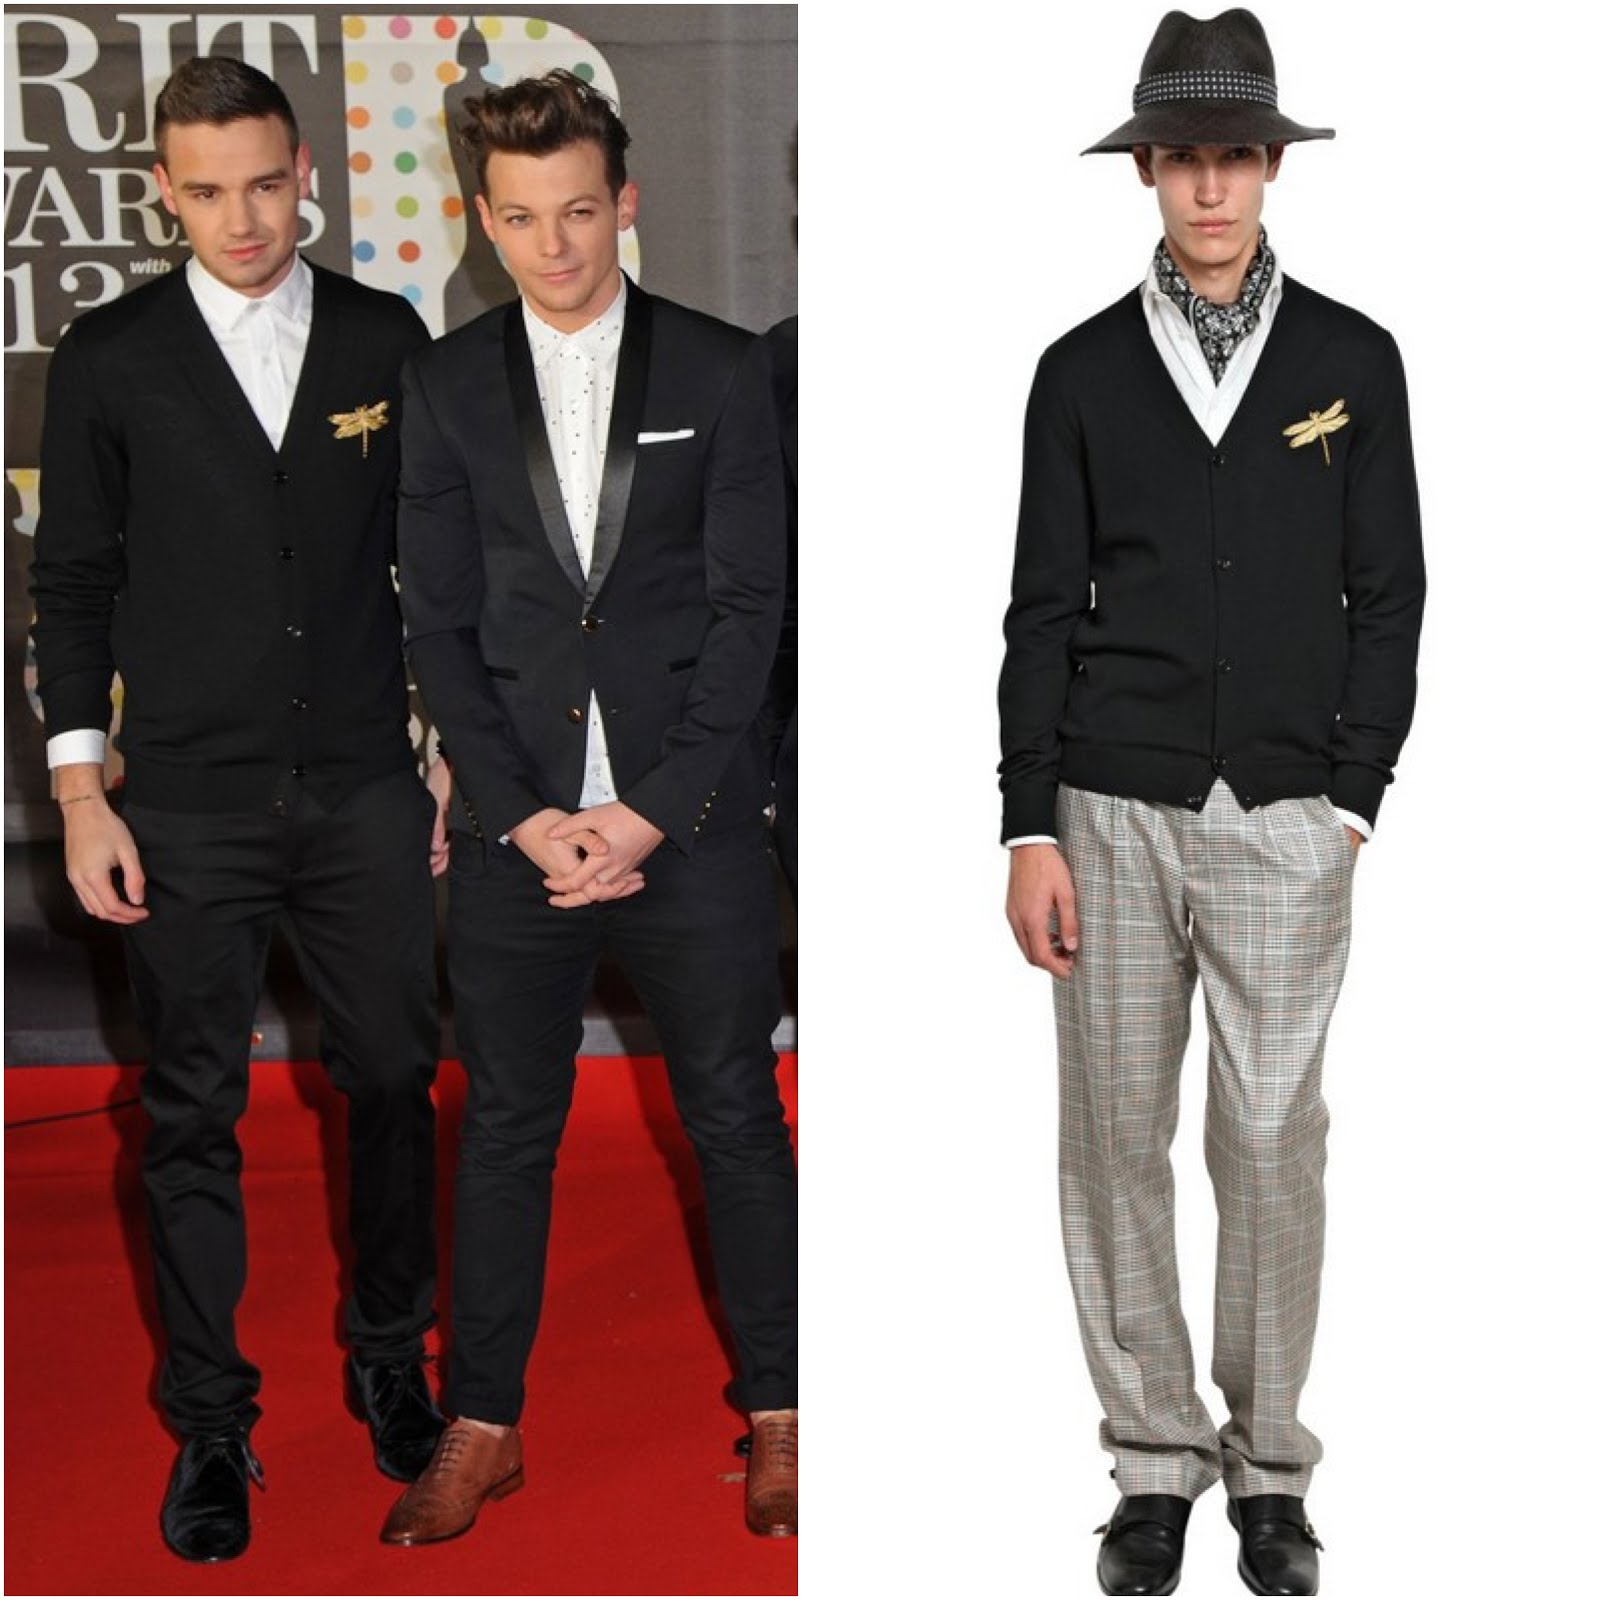 00O00 Menswear Blog Liam Payne from One Direction in Alexander McQueen gold dragonfly embroidered cardigan - Brits Awards 2013, #Brits2013